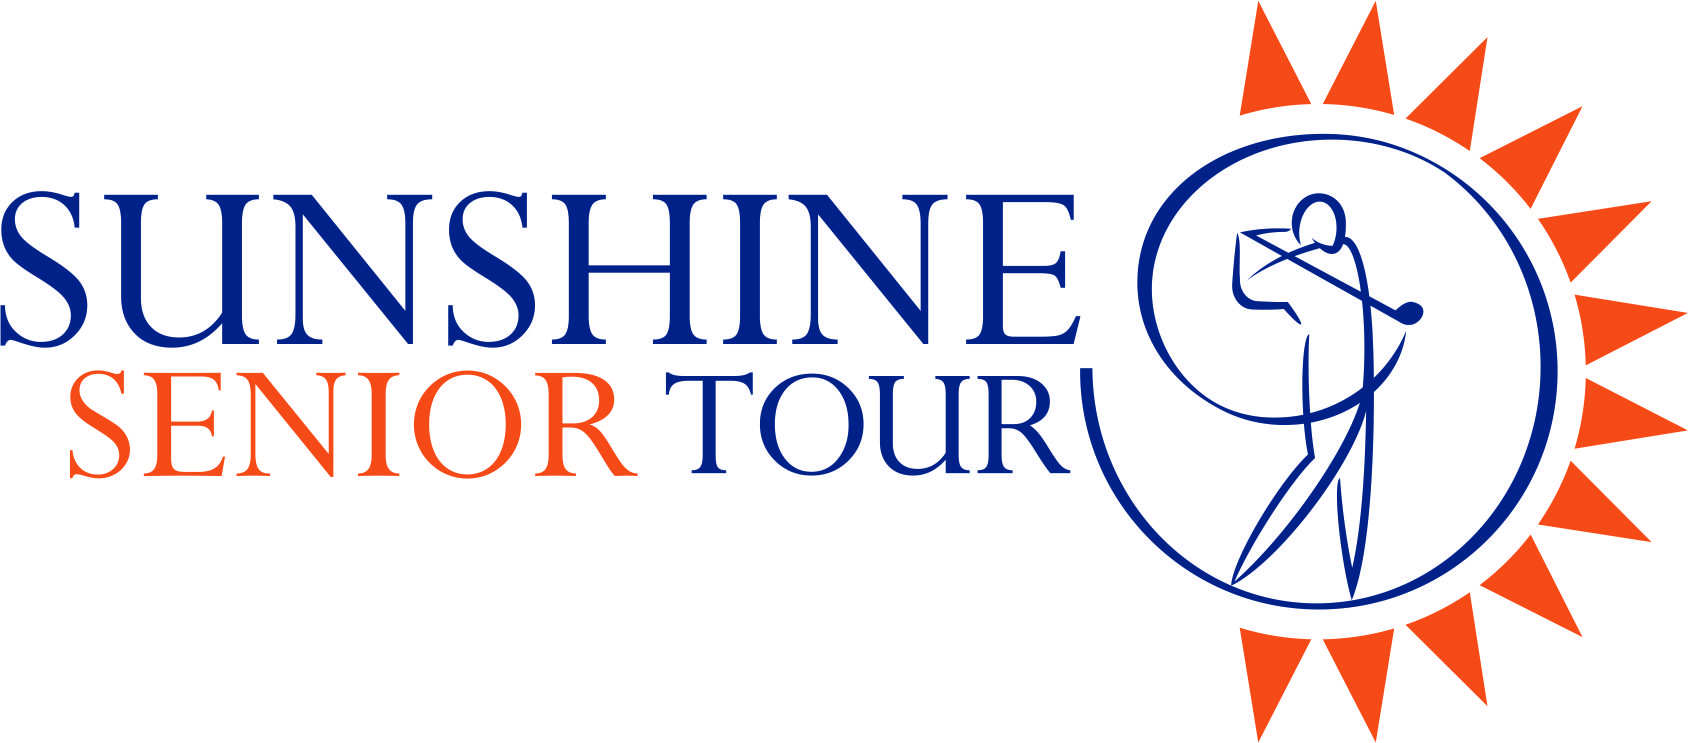 Sunshine Senior Tour : Brand Short Description Type Here.